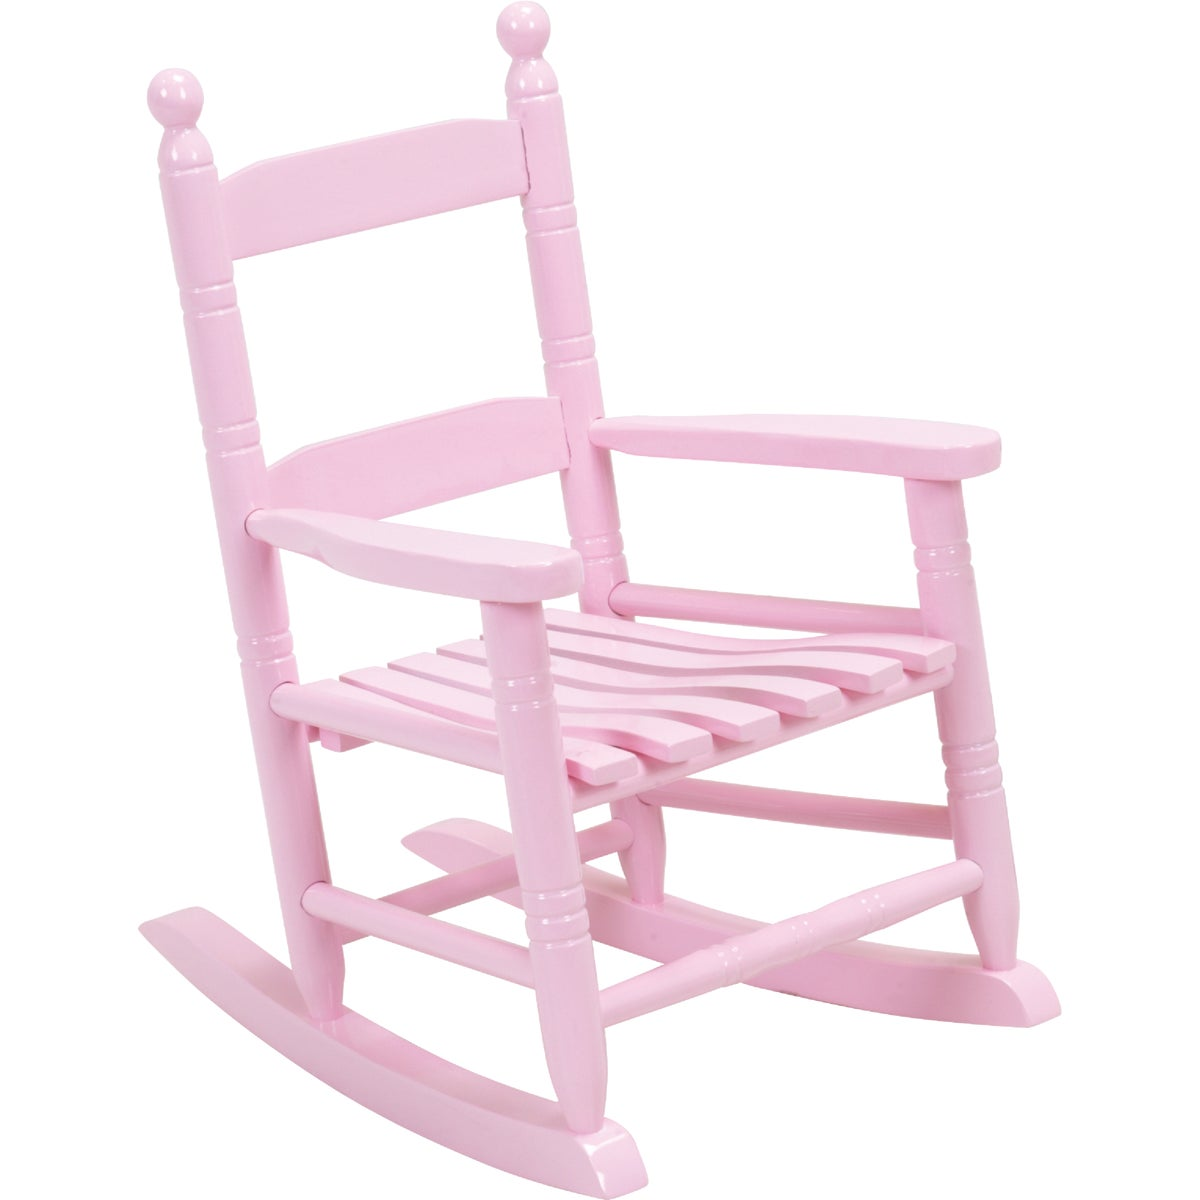 PINK CHILD'S ROCKER - KN-10P by Jackpost   Fuzhou